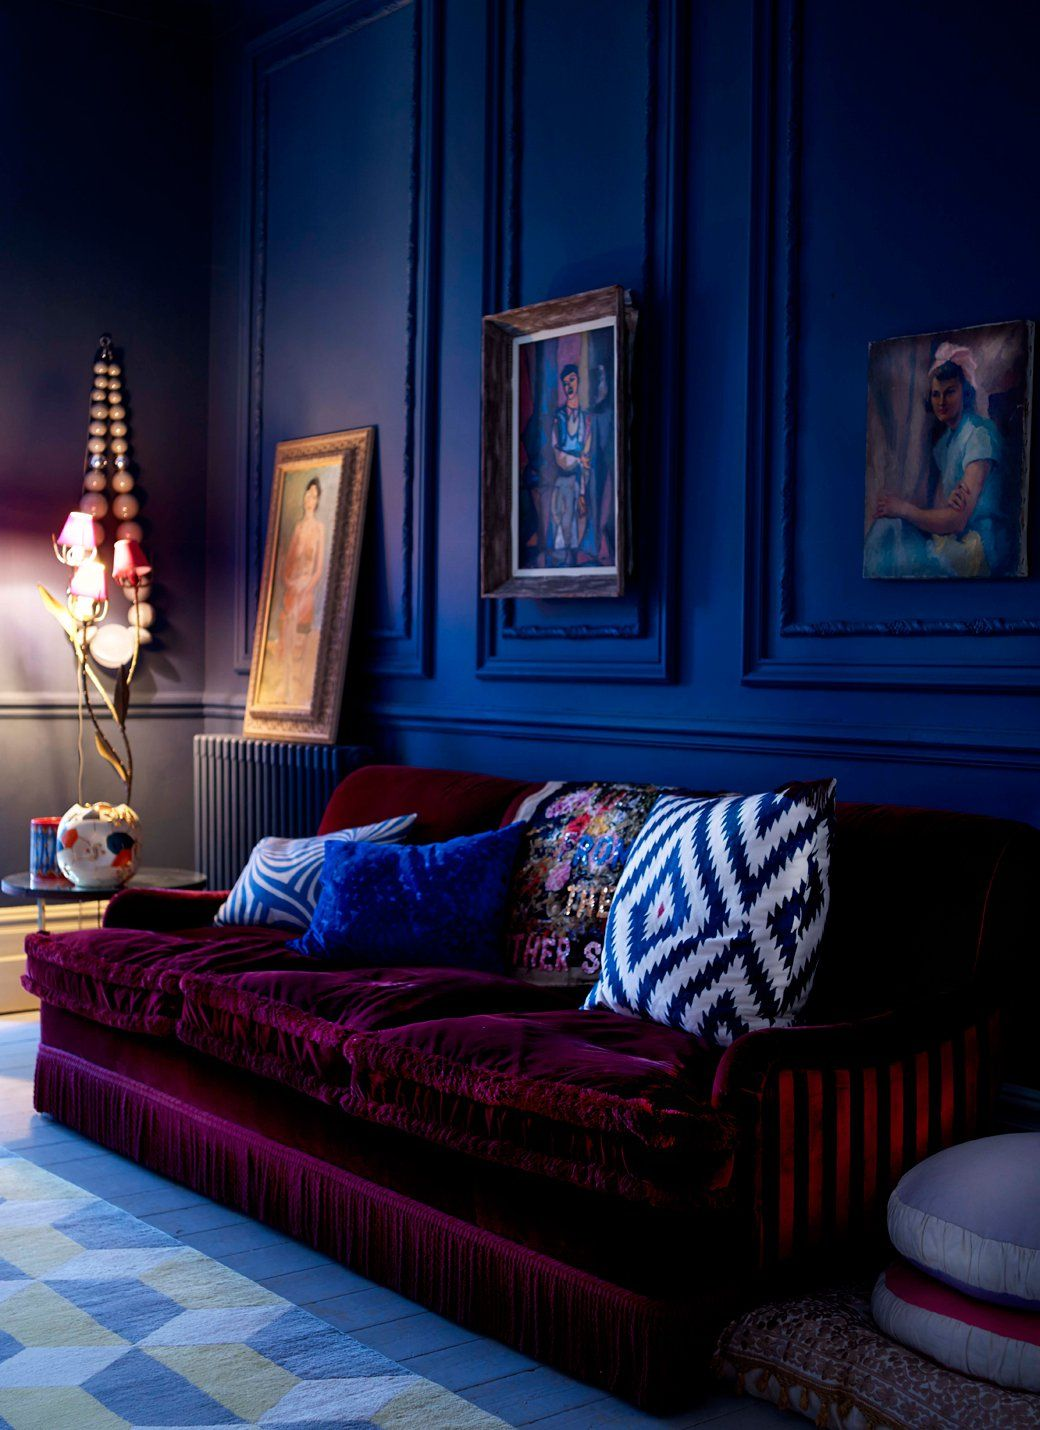 Pin By Angela On Cool Blue House Interior Moody Interior Design Room Decor